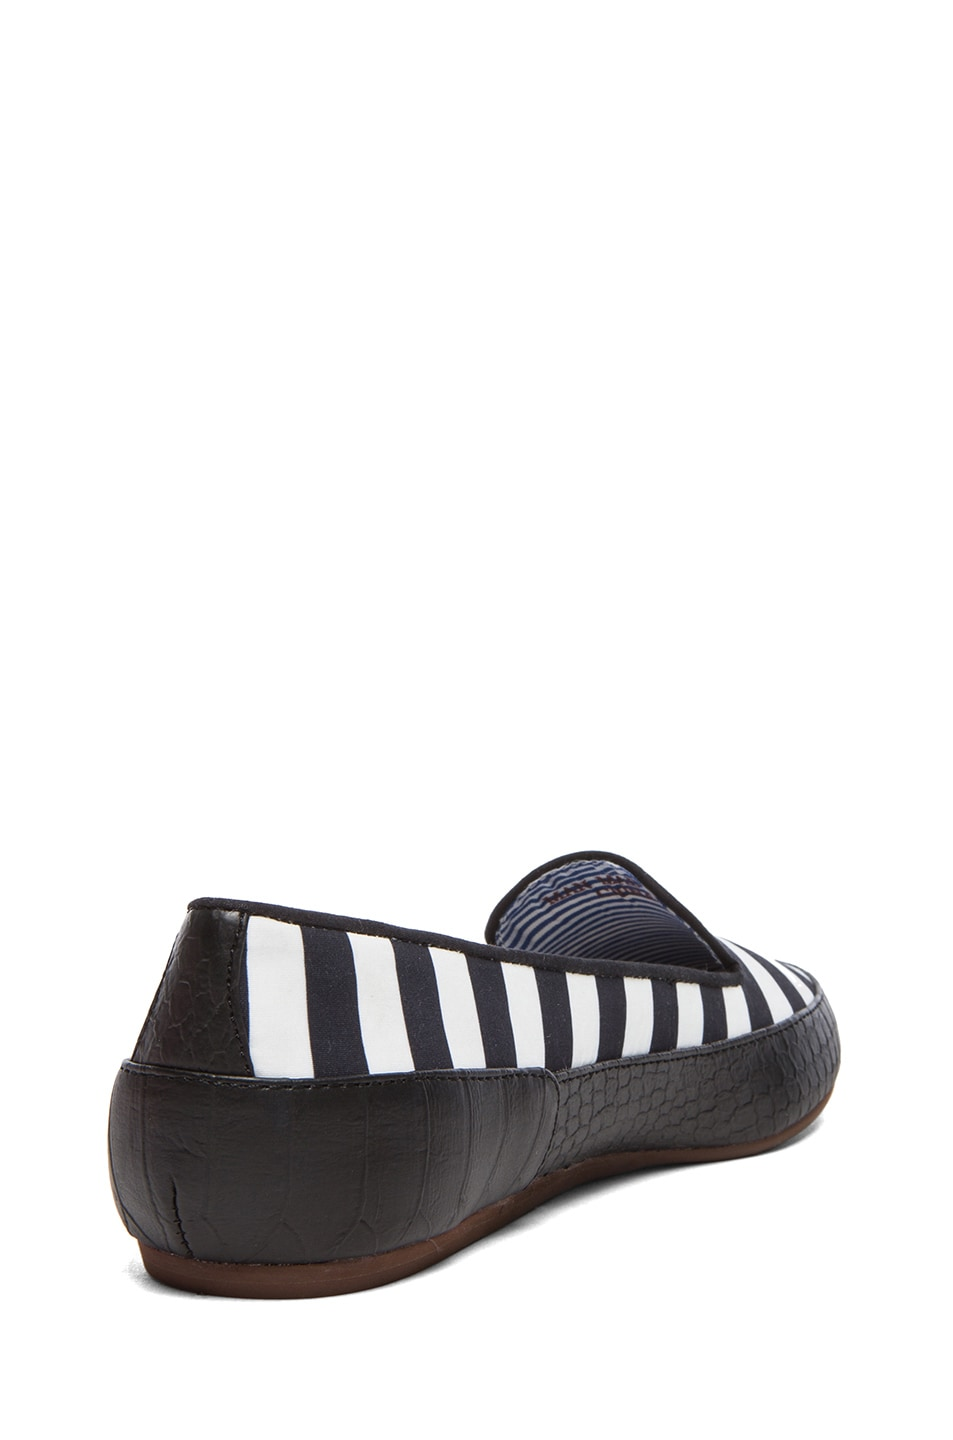 Image 3 of Charles Philip Shanghai Gaby Cotton Flats in Black Stripes